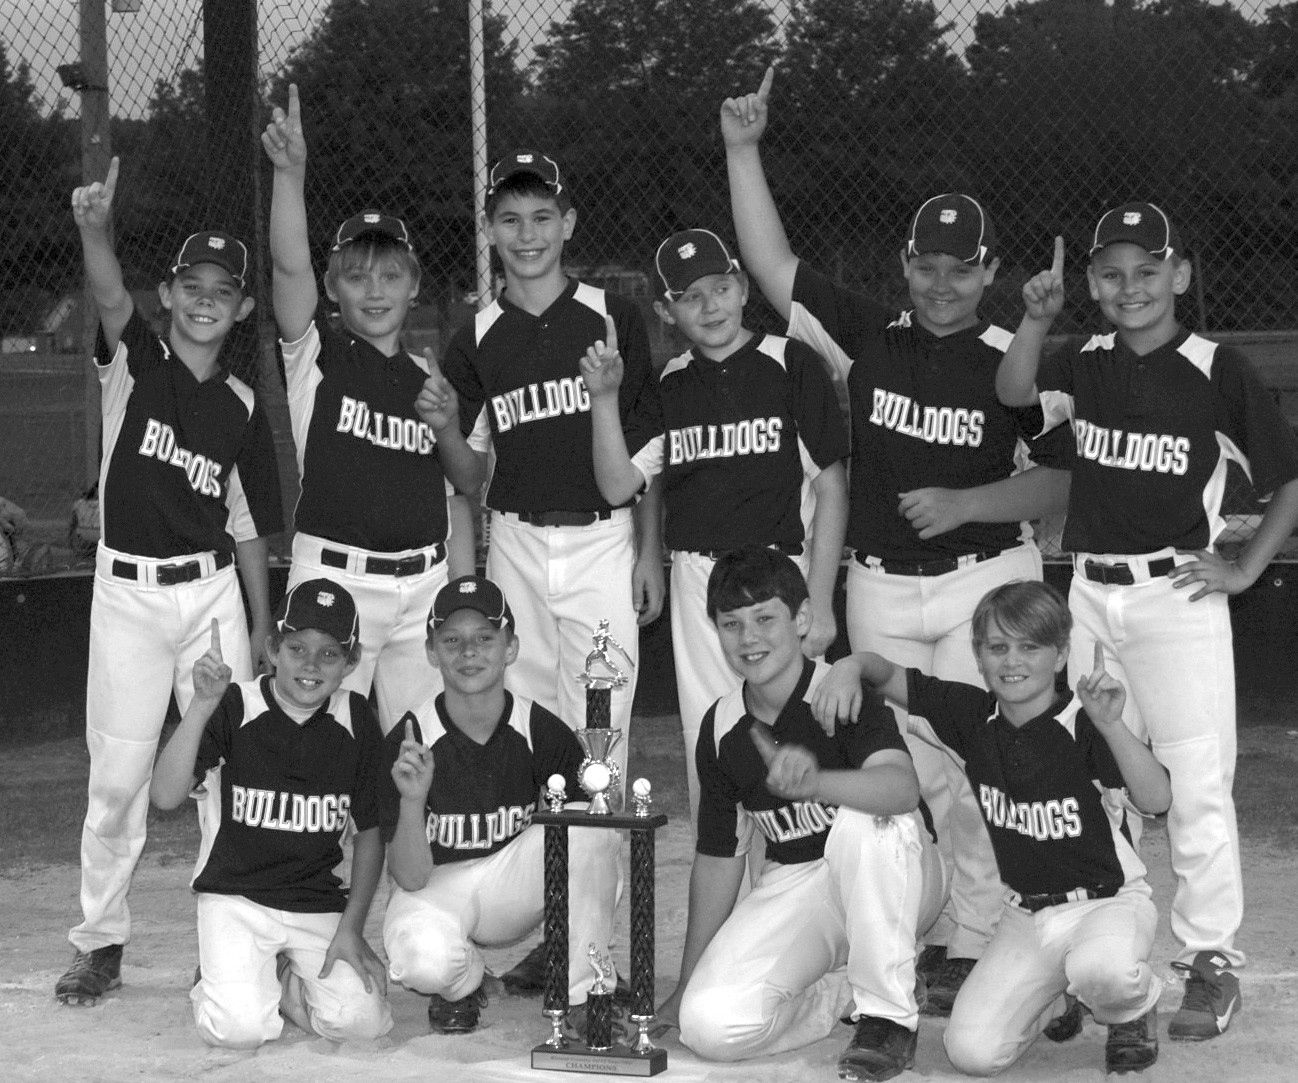 The Snead Bulldogs are the Blount County 12-andunder champions for the third year in a row. Pictured are, front row (left to right), Kevin Thomas, Matt Clowdus, Gavin Harper, and Camden Lackey. Back row, (l to r), John David Hutchens, Micheal Moseley, Adam Vitolo, Will Hutchens, Steven Thomas, and Andrew Shelton. Not pictured are coaches Kevin Shelton, Jason Lackey, Brant Hutchens, and Michelle Shelton